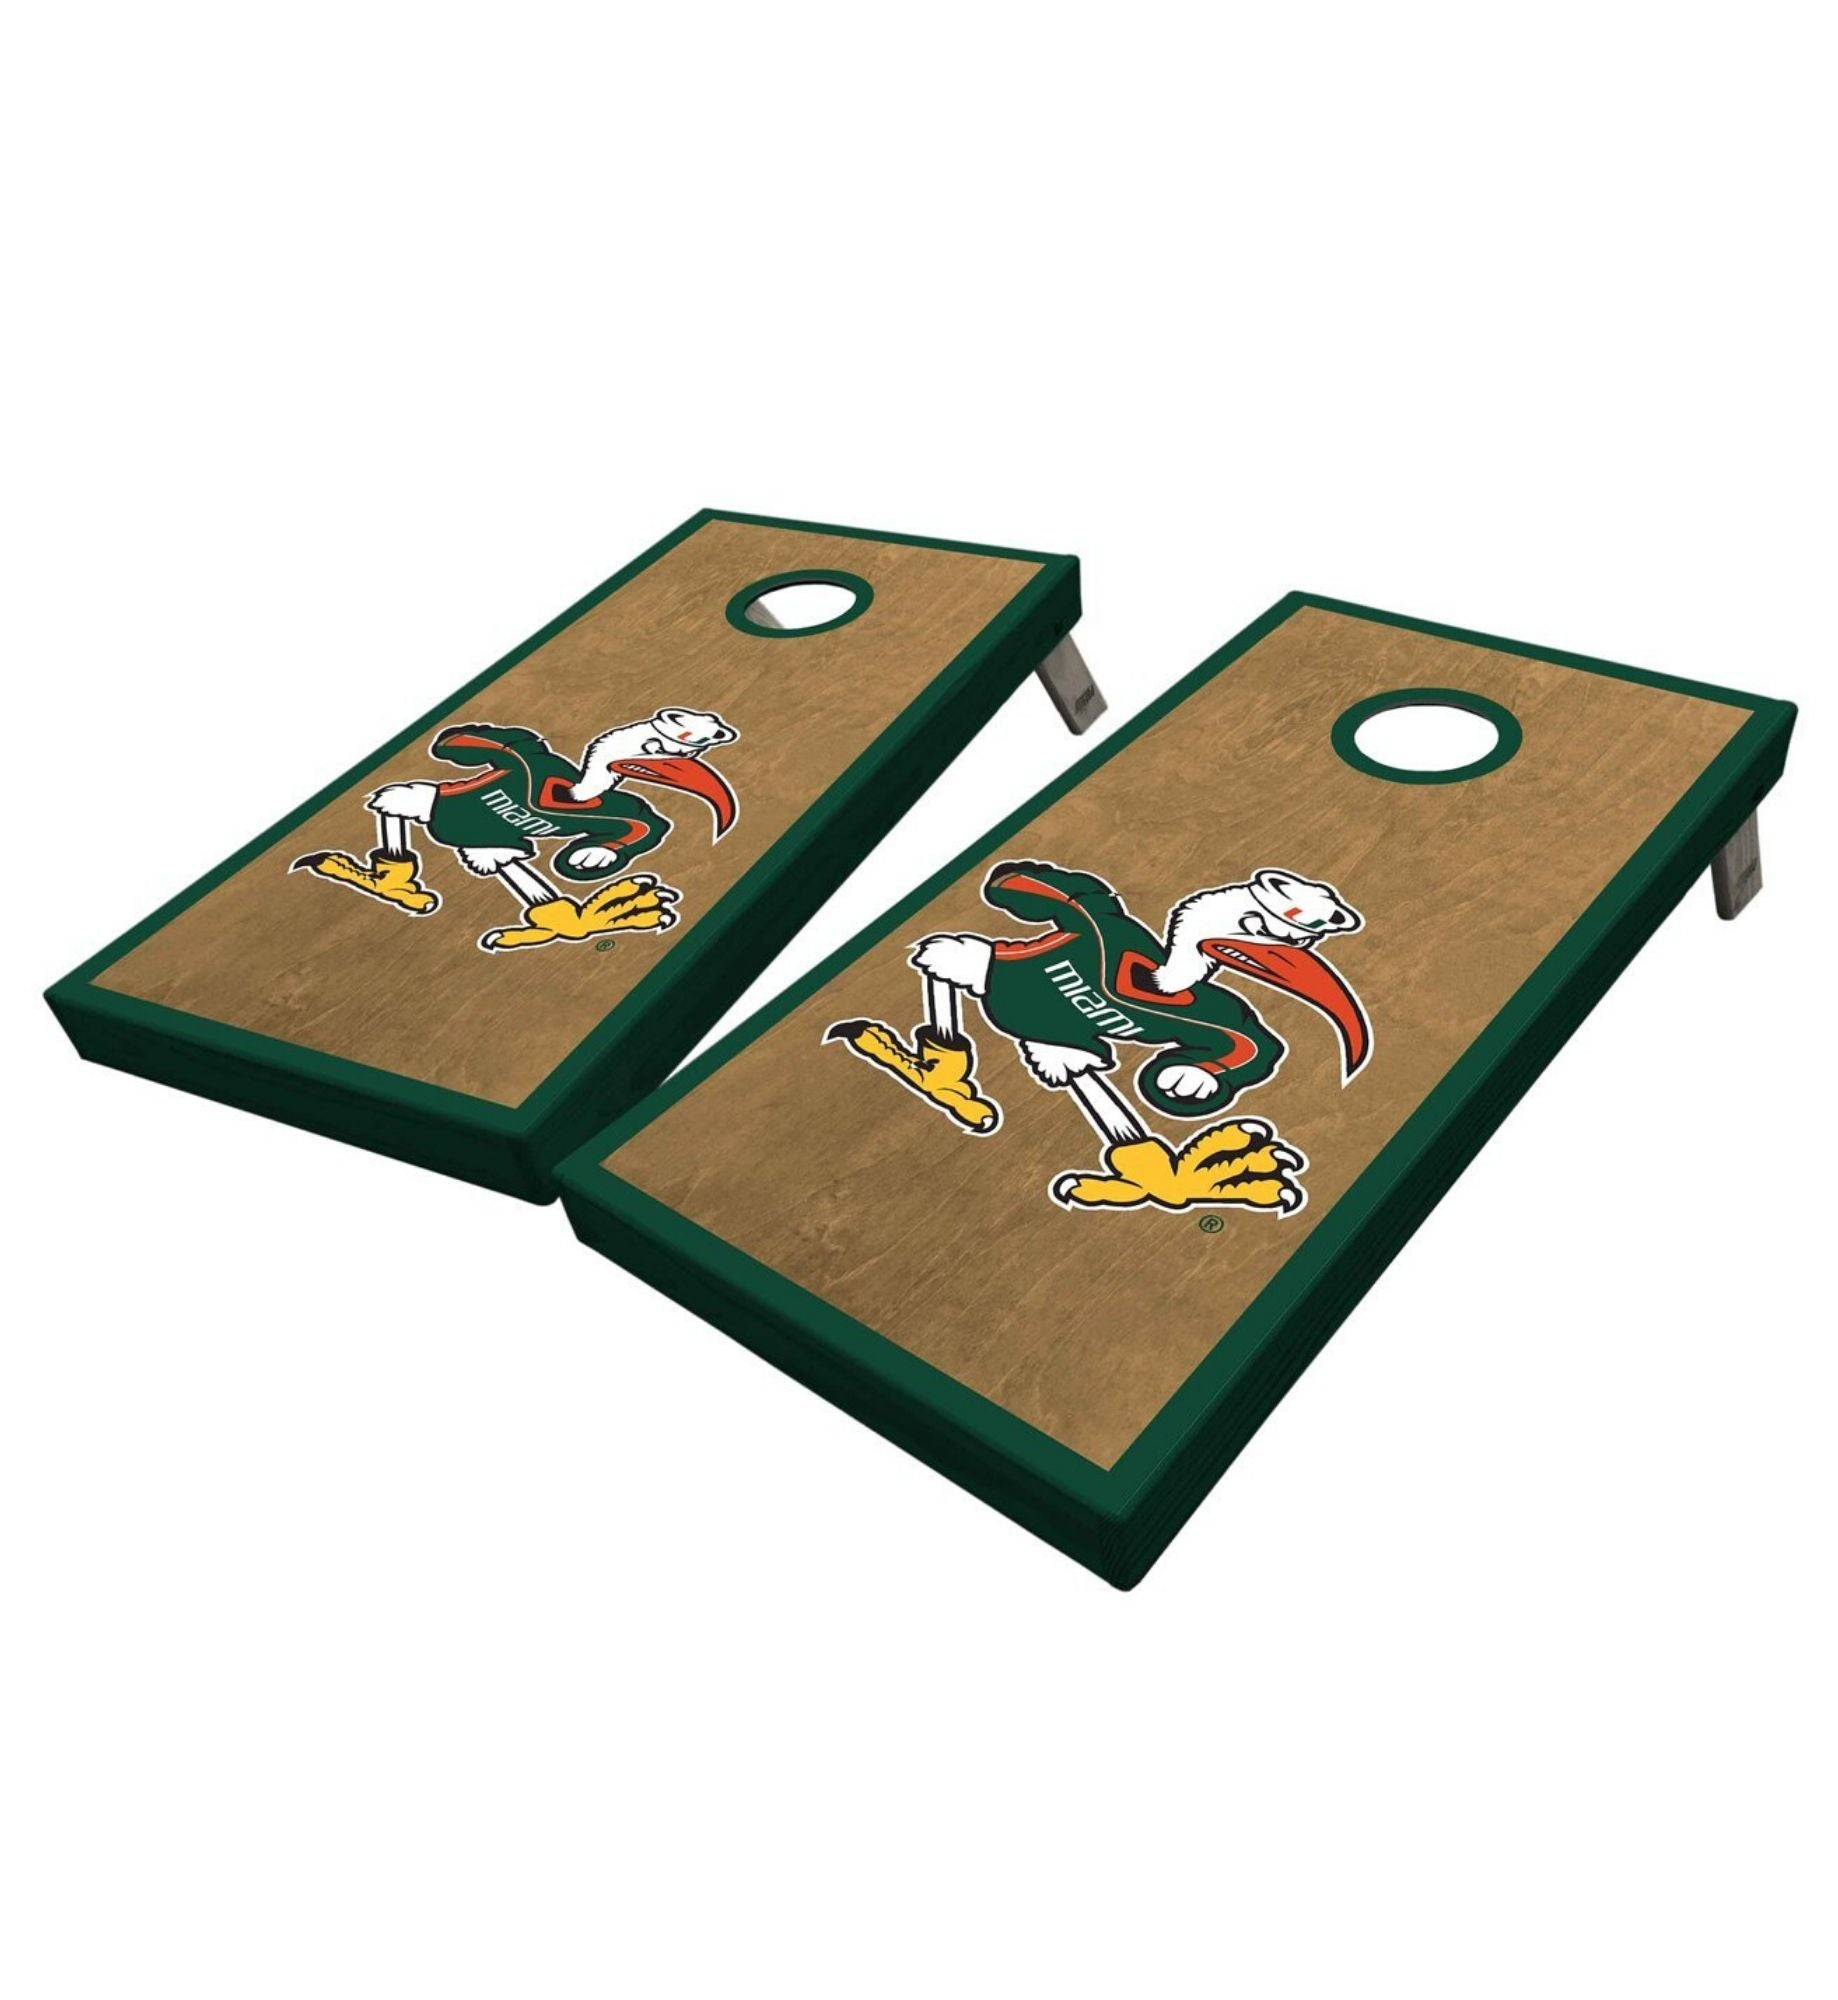 Regulation cornhole boards. University of Miami vintage style premium quality custom designs.